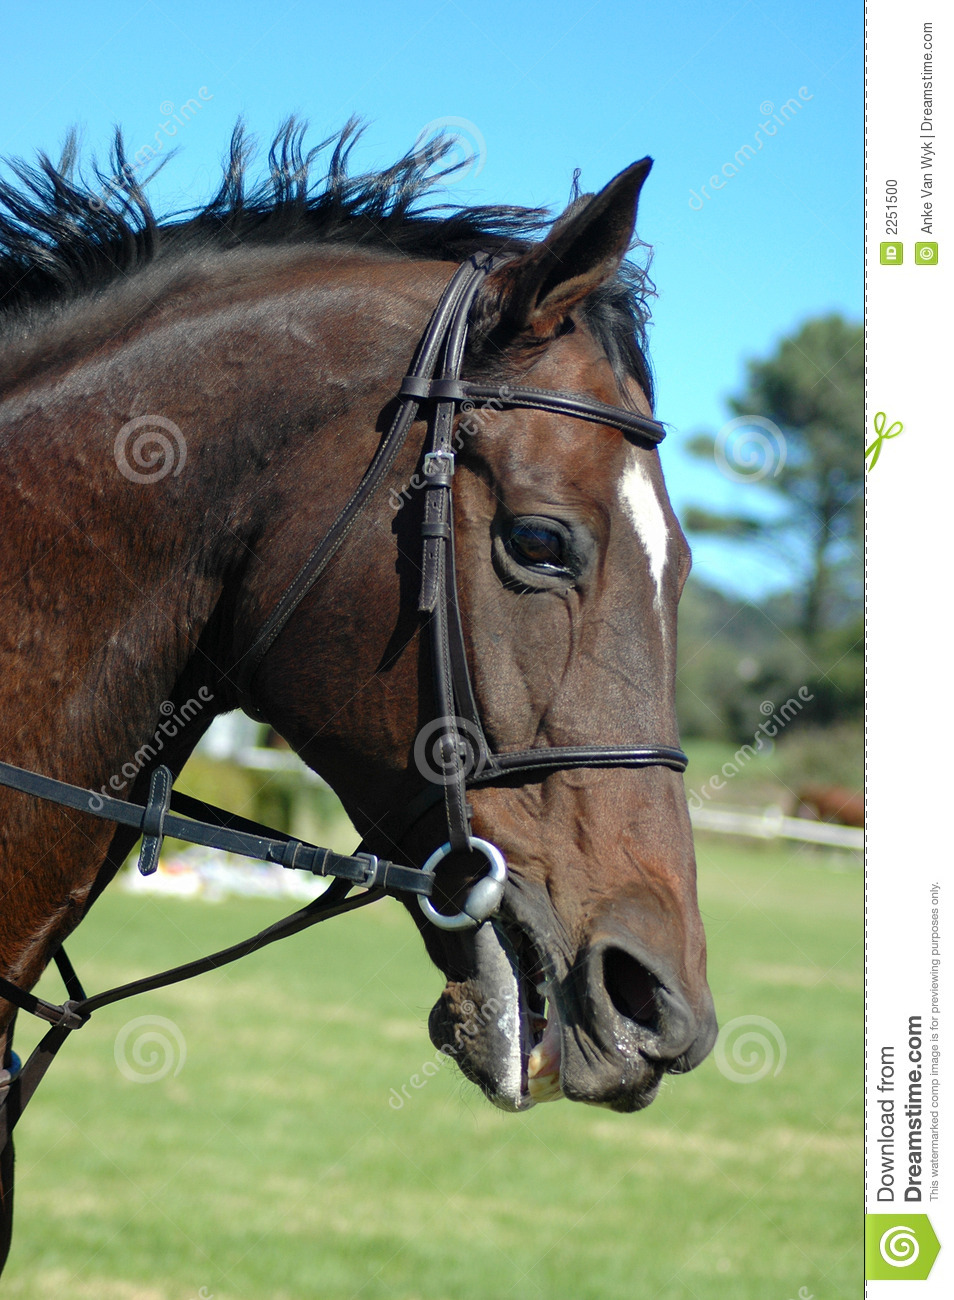 Action Horse Stock Photo Image 2251500